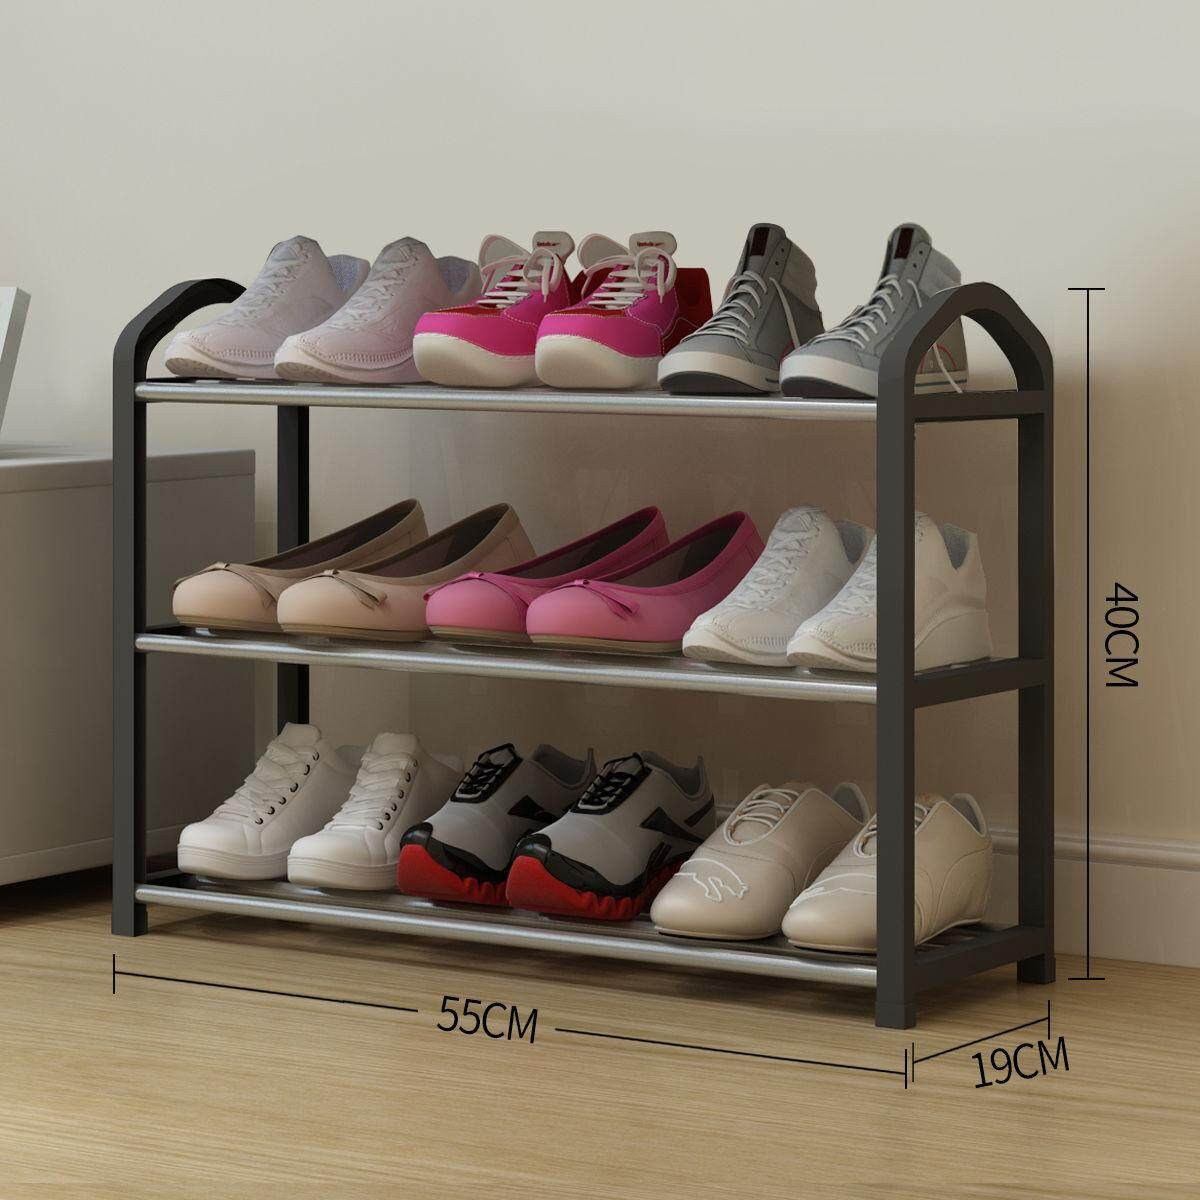 Easy assembly multi-layer shoe rack home economic stainless steel pipe + plastic assembly door storage shoe cabinet special offer black